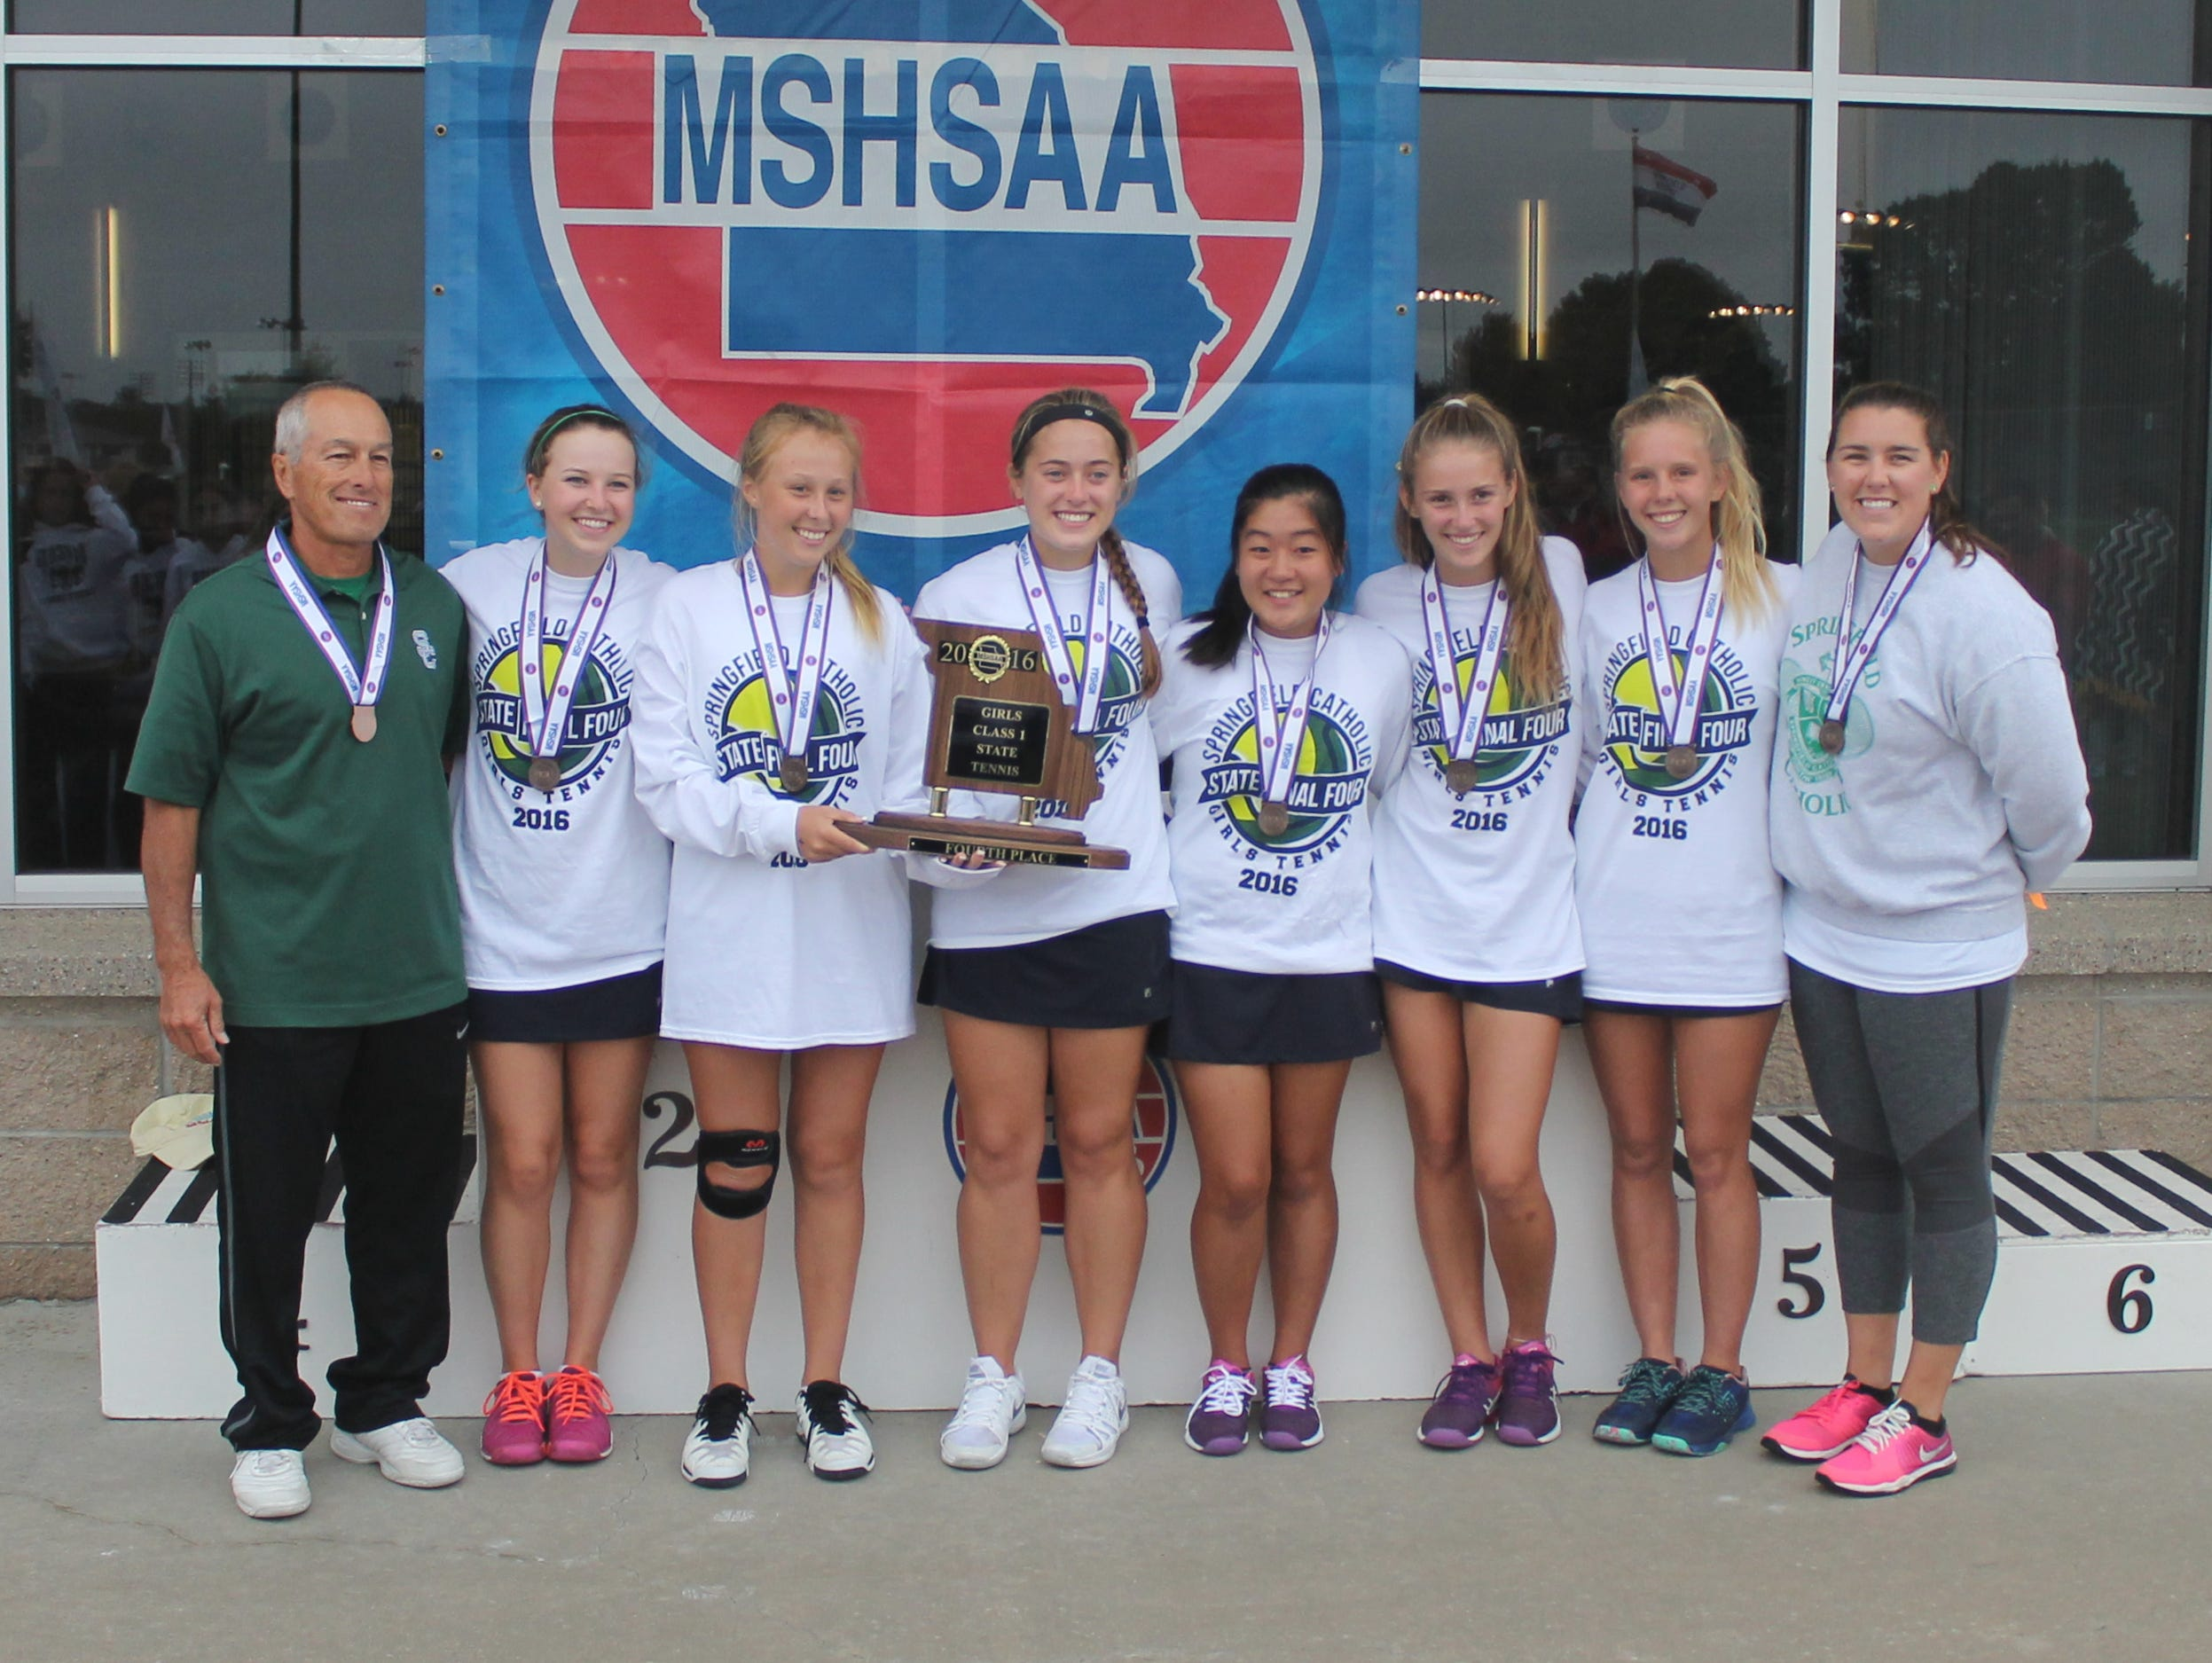 Springfield Catholic's fourth place tennis team with their trophy and medals.